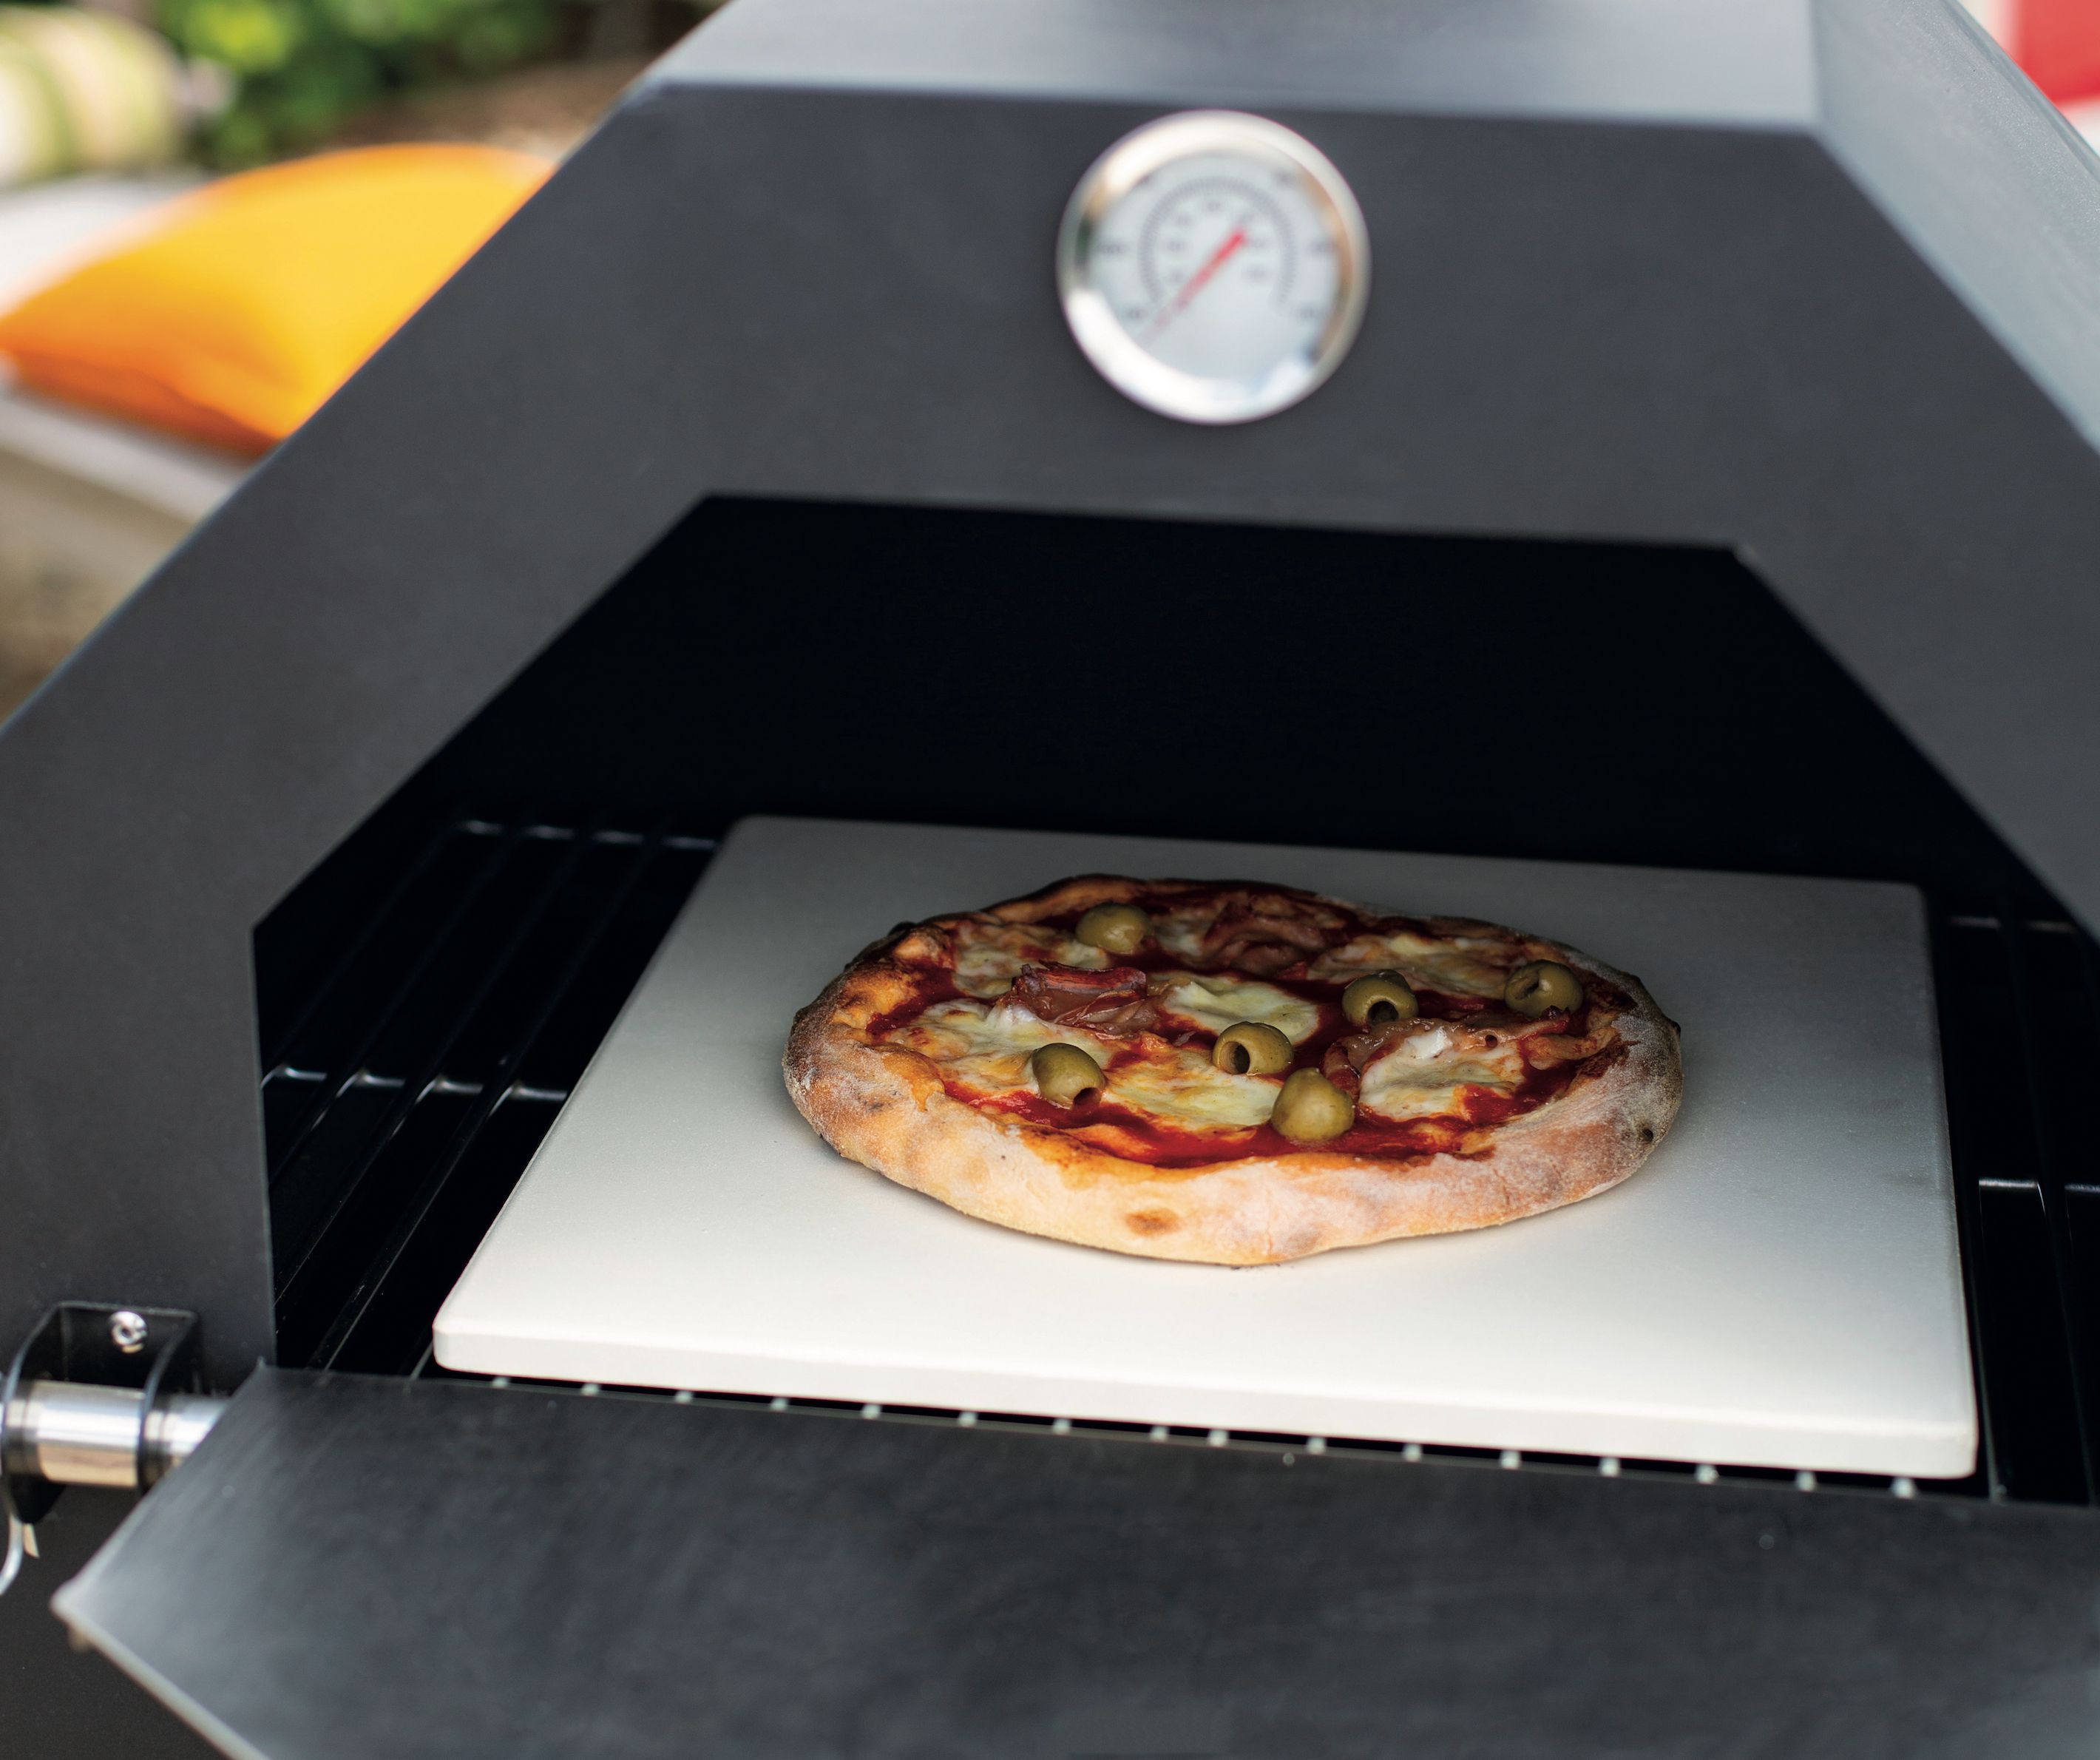 Lidl is selling an outdoor pizza oven for less than £100